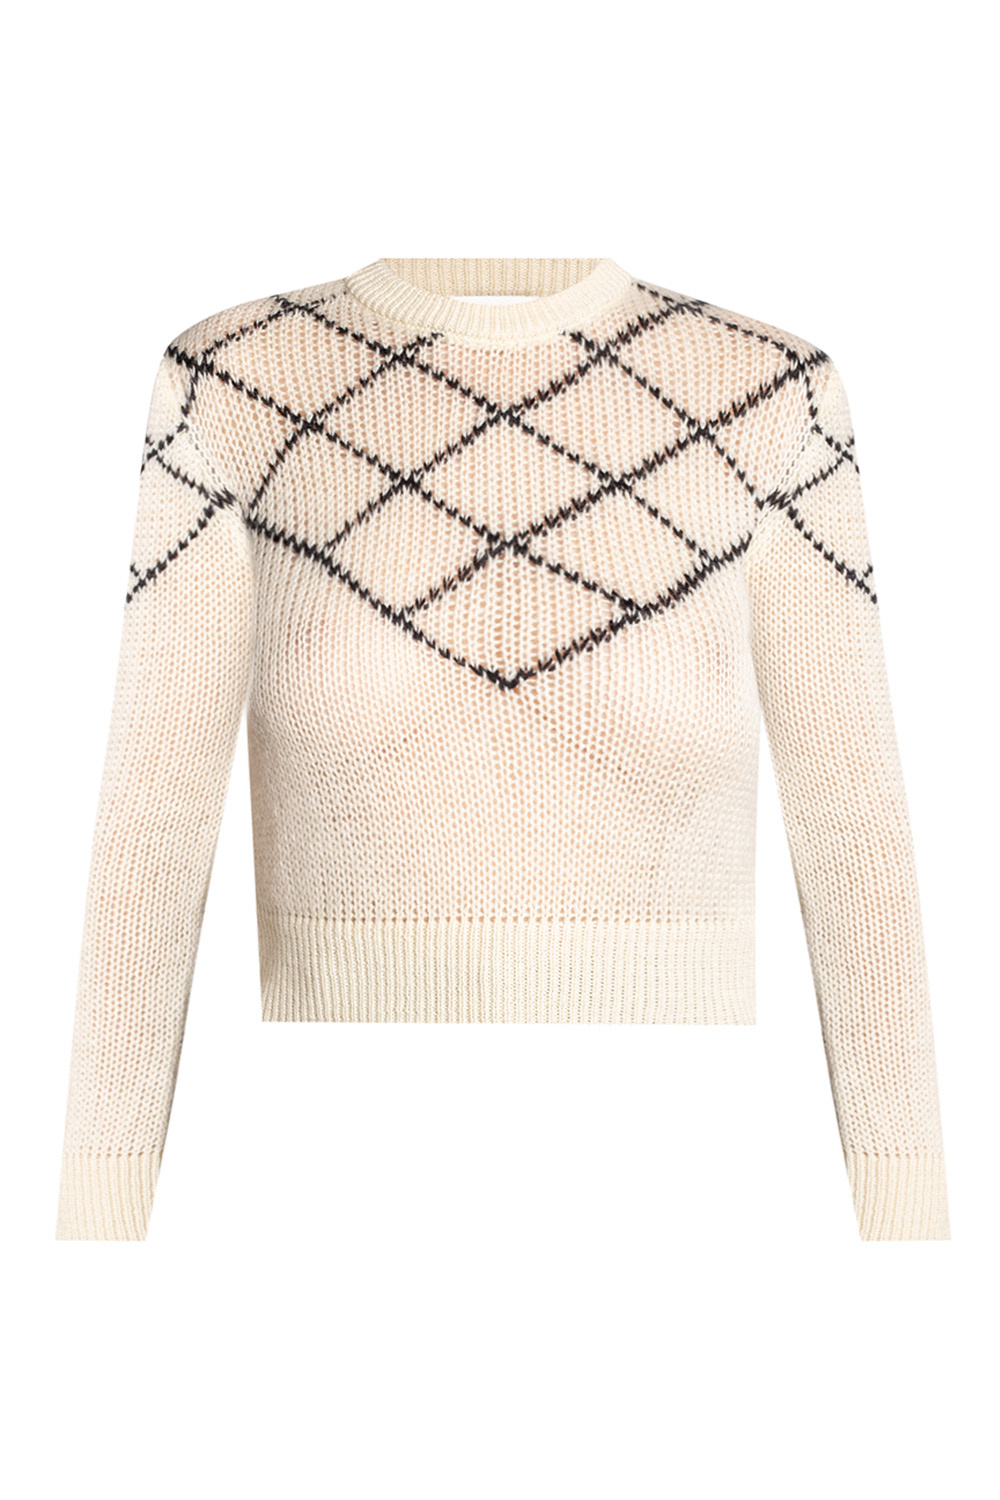 Saint Laurent Knitted sweater